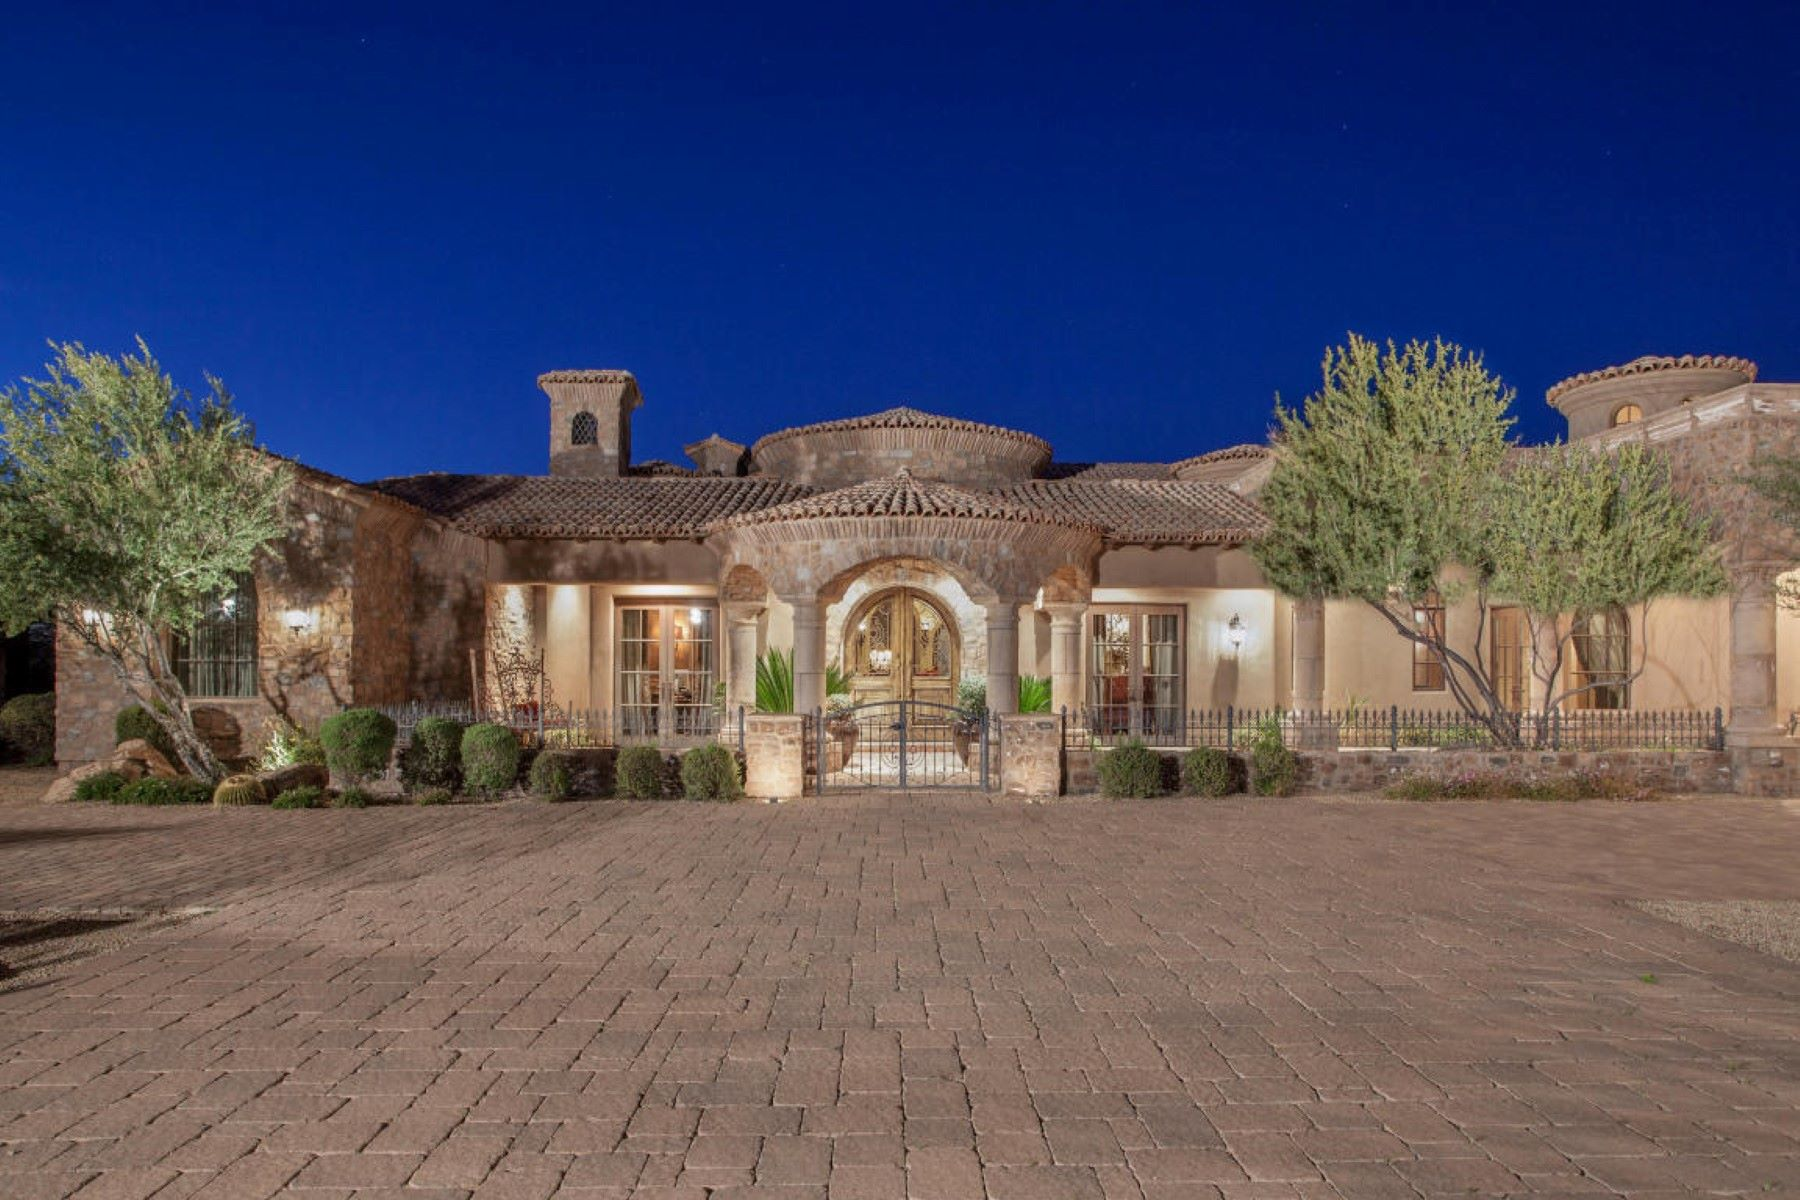 Maison unifamiliale pour l Vente à Incredible sprawling estate situated on acres of beautiful Sonoran Desert 8143 E Stagecoach Pass Scottsdale, Arizona, 85266 États-Unis